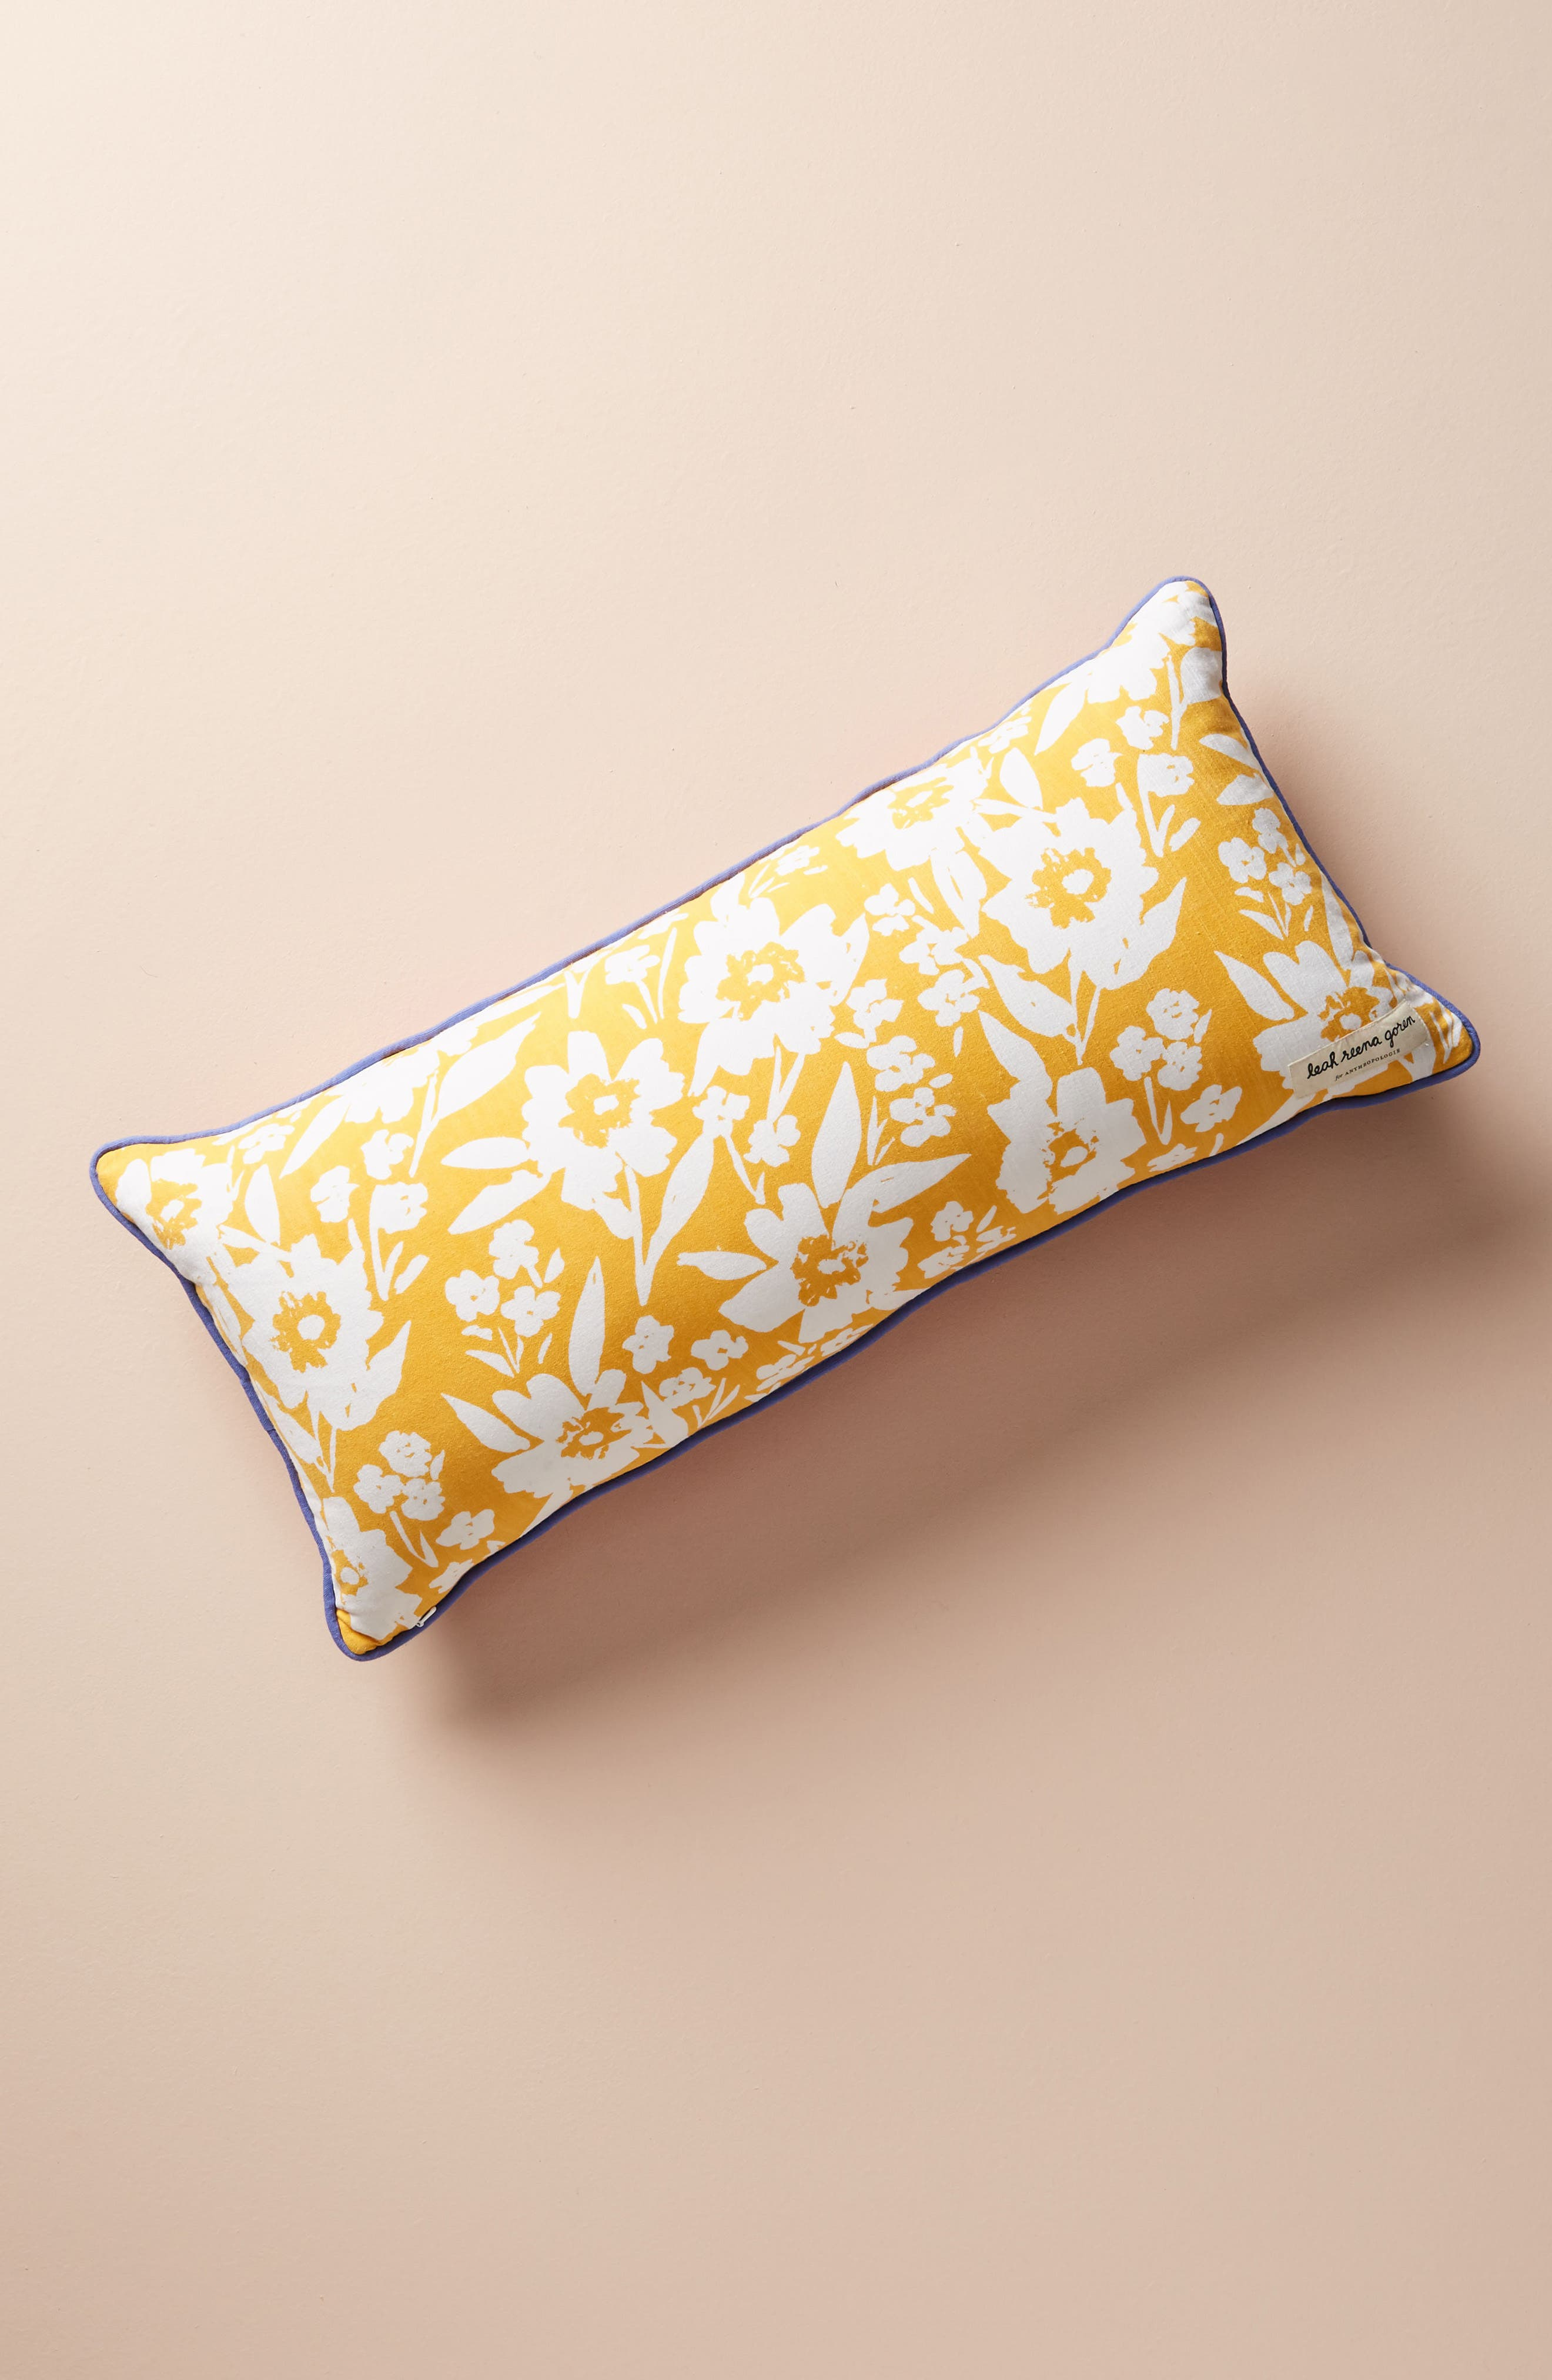 ANTHROPOLOGIE,                             Painted Poppies Accent Pillow,                             Alternate thumbnail 2, color,                             650